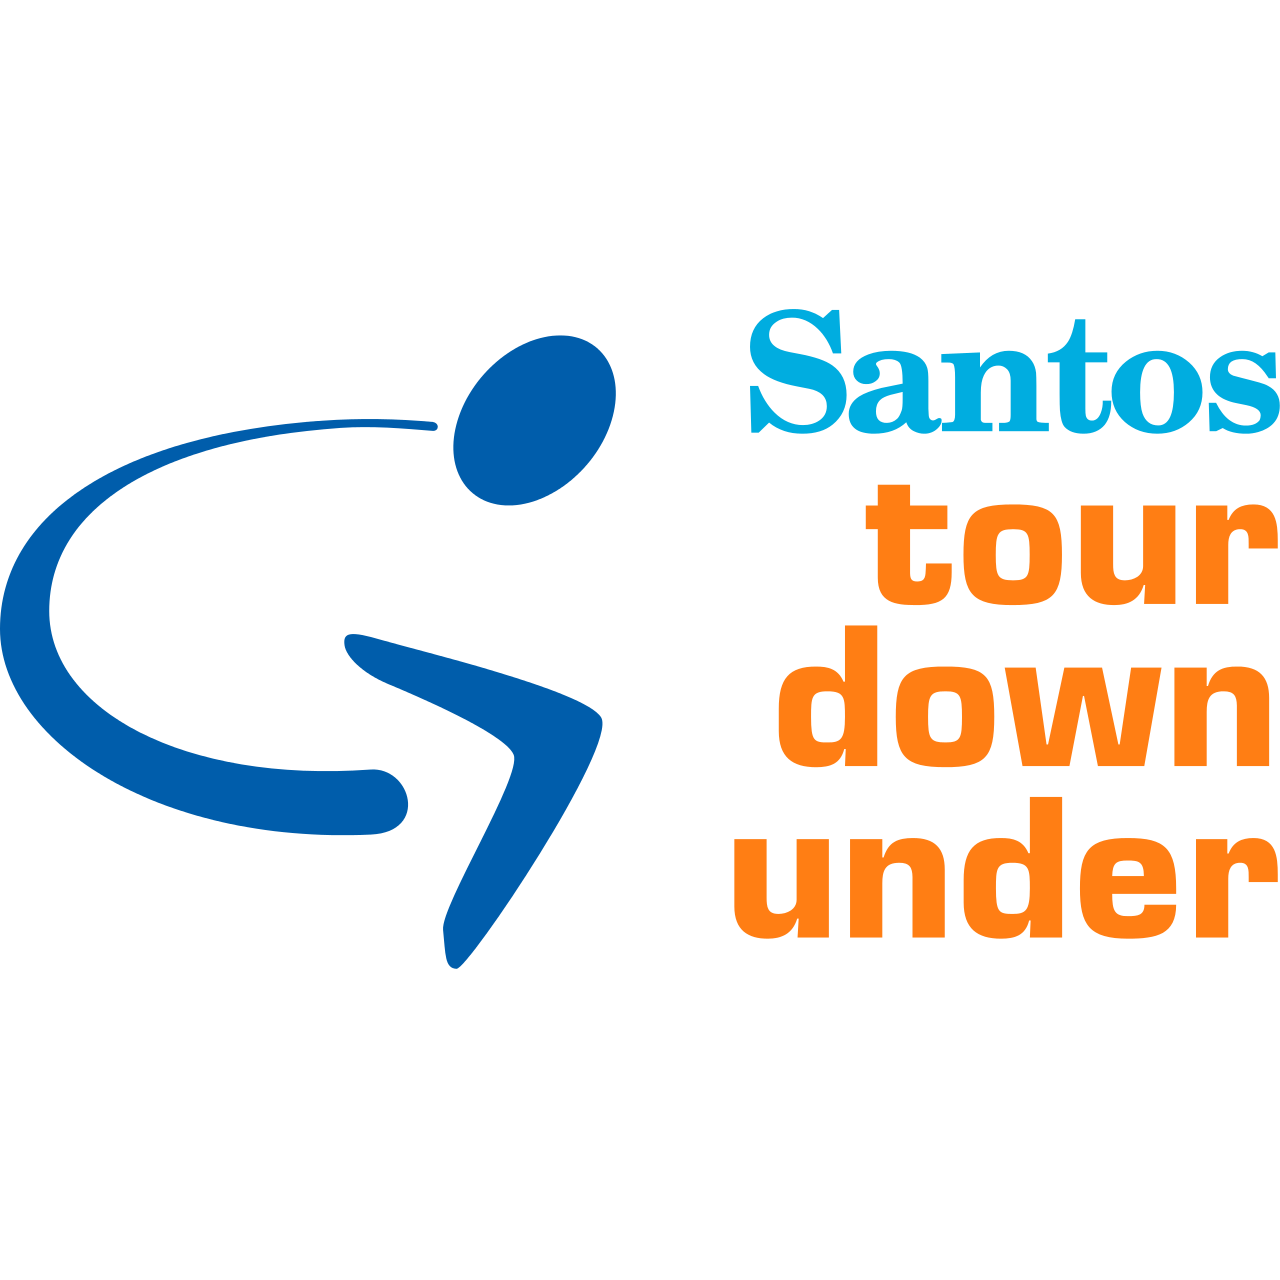 2019 UCI Cycling World Tour - Tour Down Under